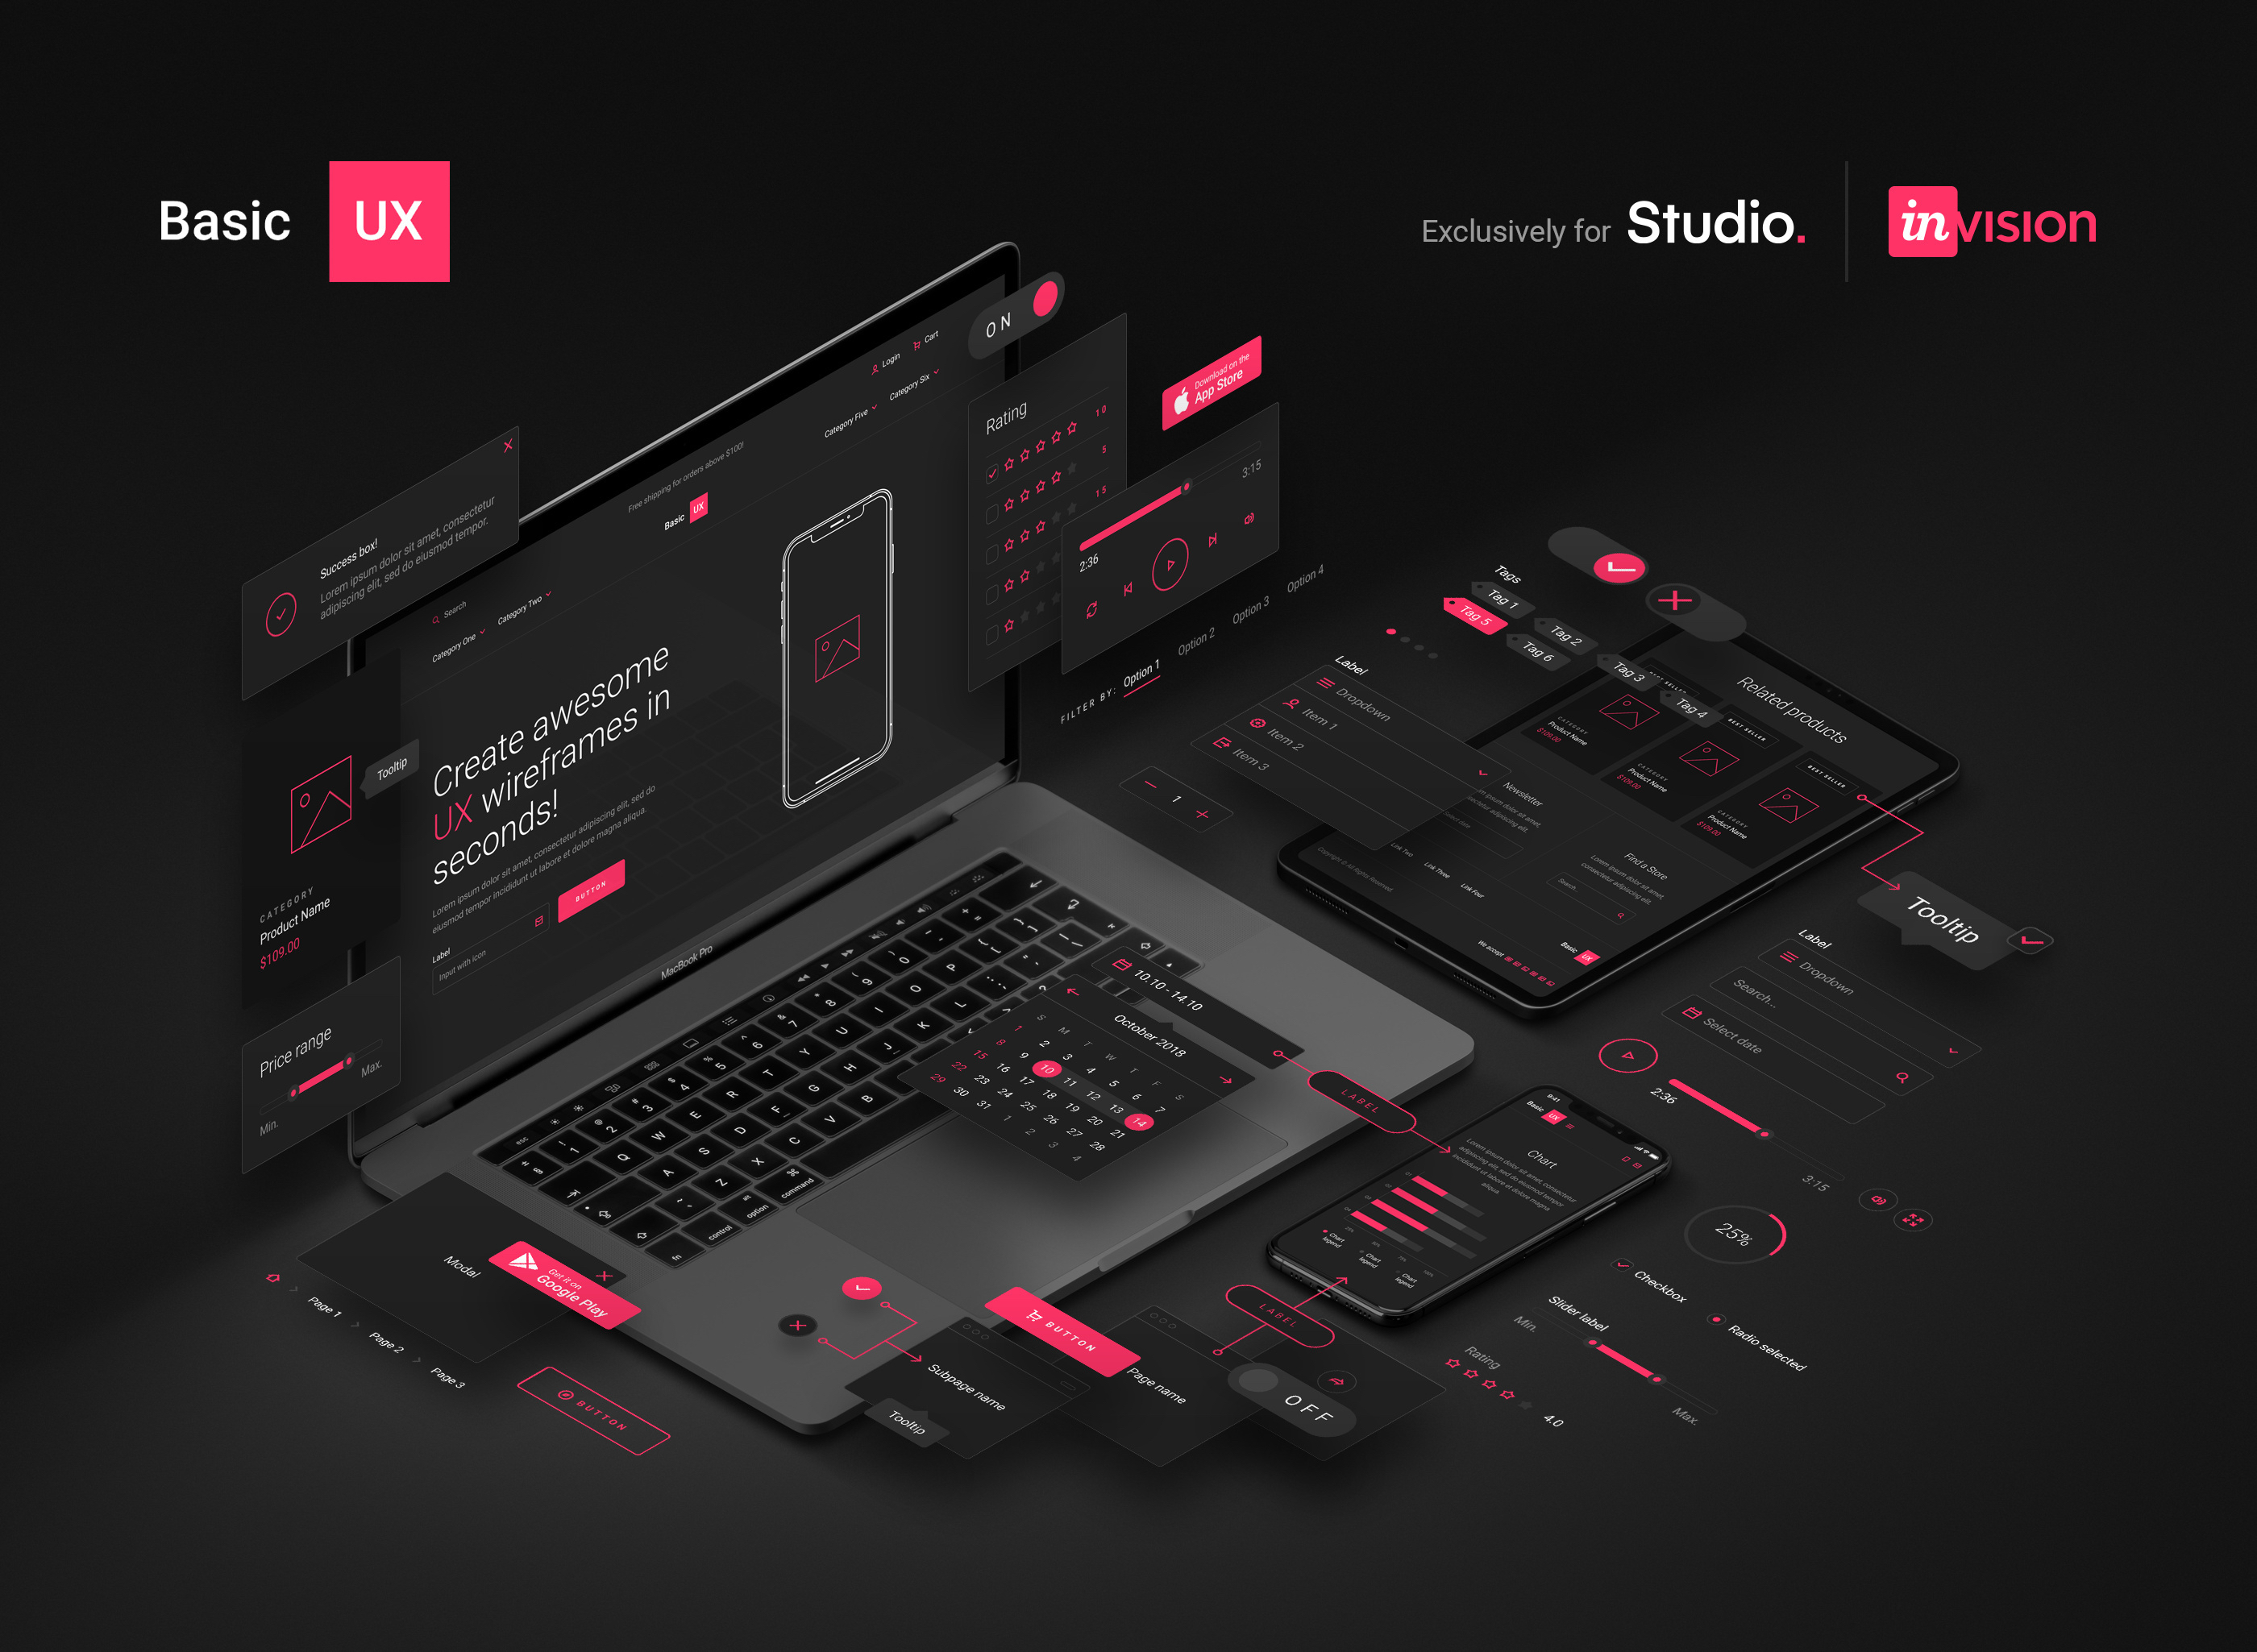 Basic UX for Invision Studio - The final deliverable was a family of 4 products that you can download and use for free. Just download InVision Studio, open their App Store and search for 128 Outline Icons, eCommerce Wireframe Kit, User Interface Kit and Web Wireframe Kit.